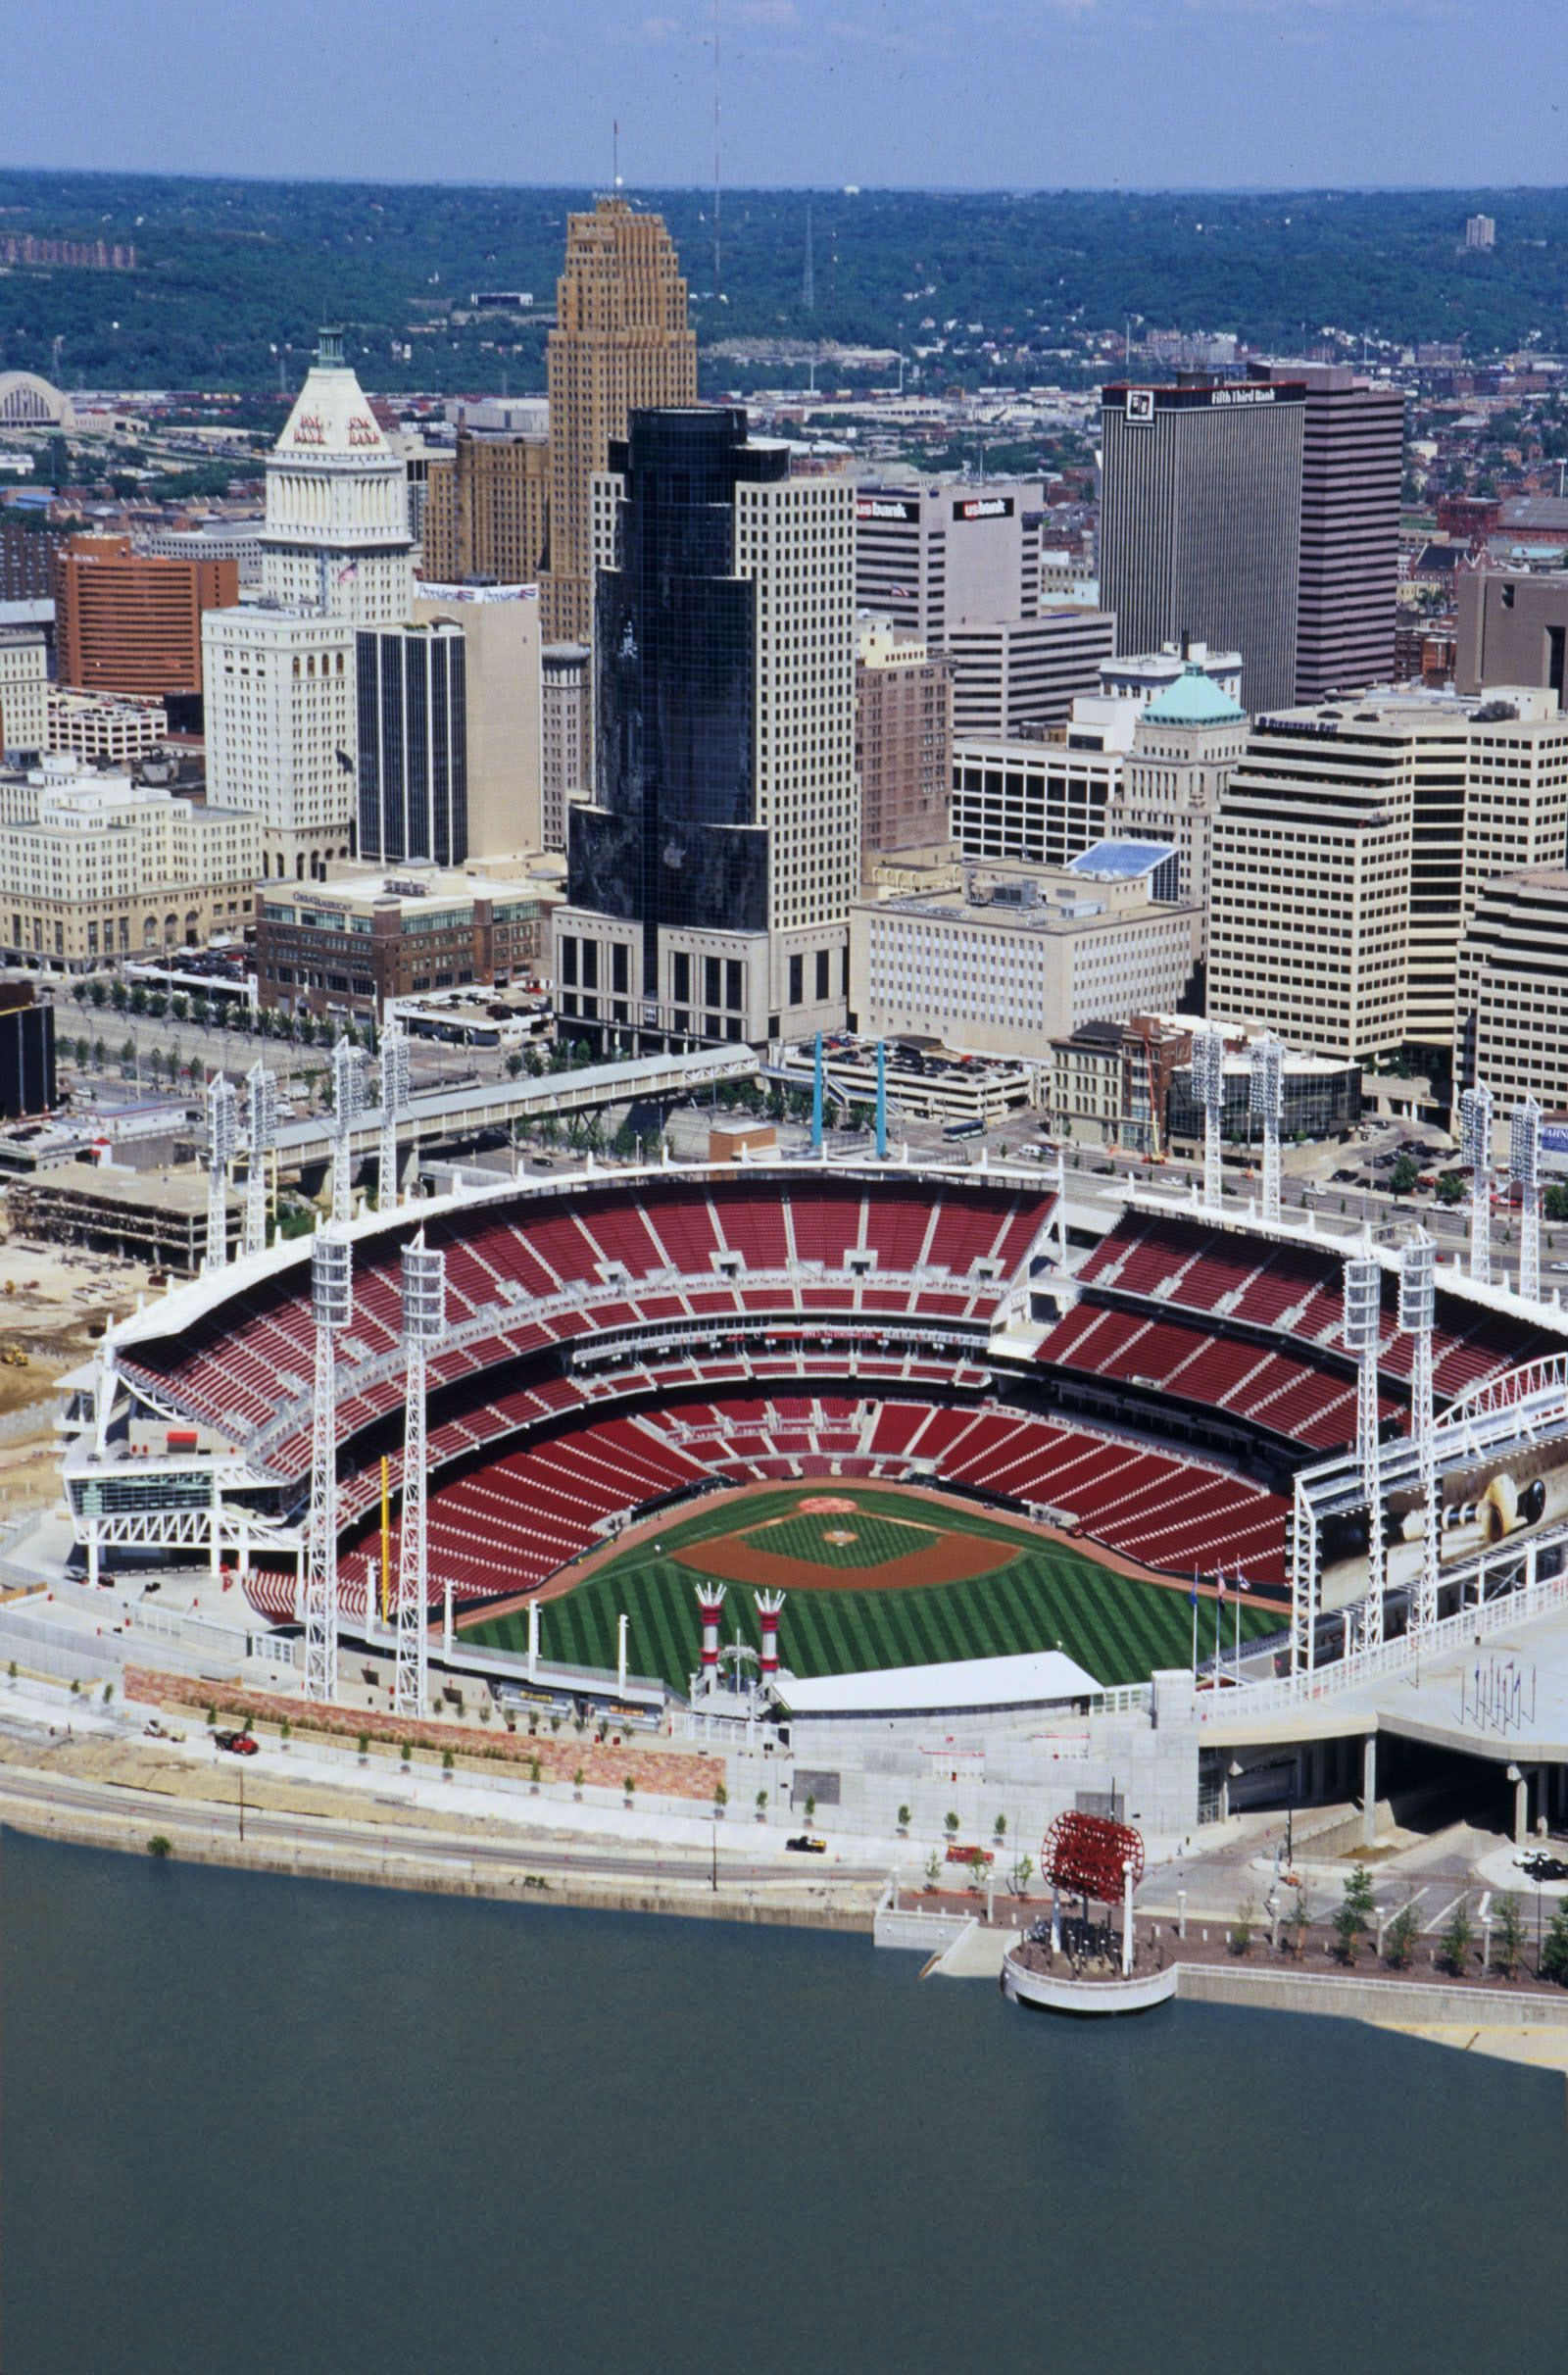 Great American Ballpark Baseball Park Cincinnati Reds Game Mlb Stadiums